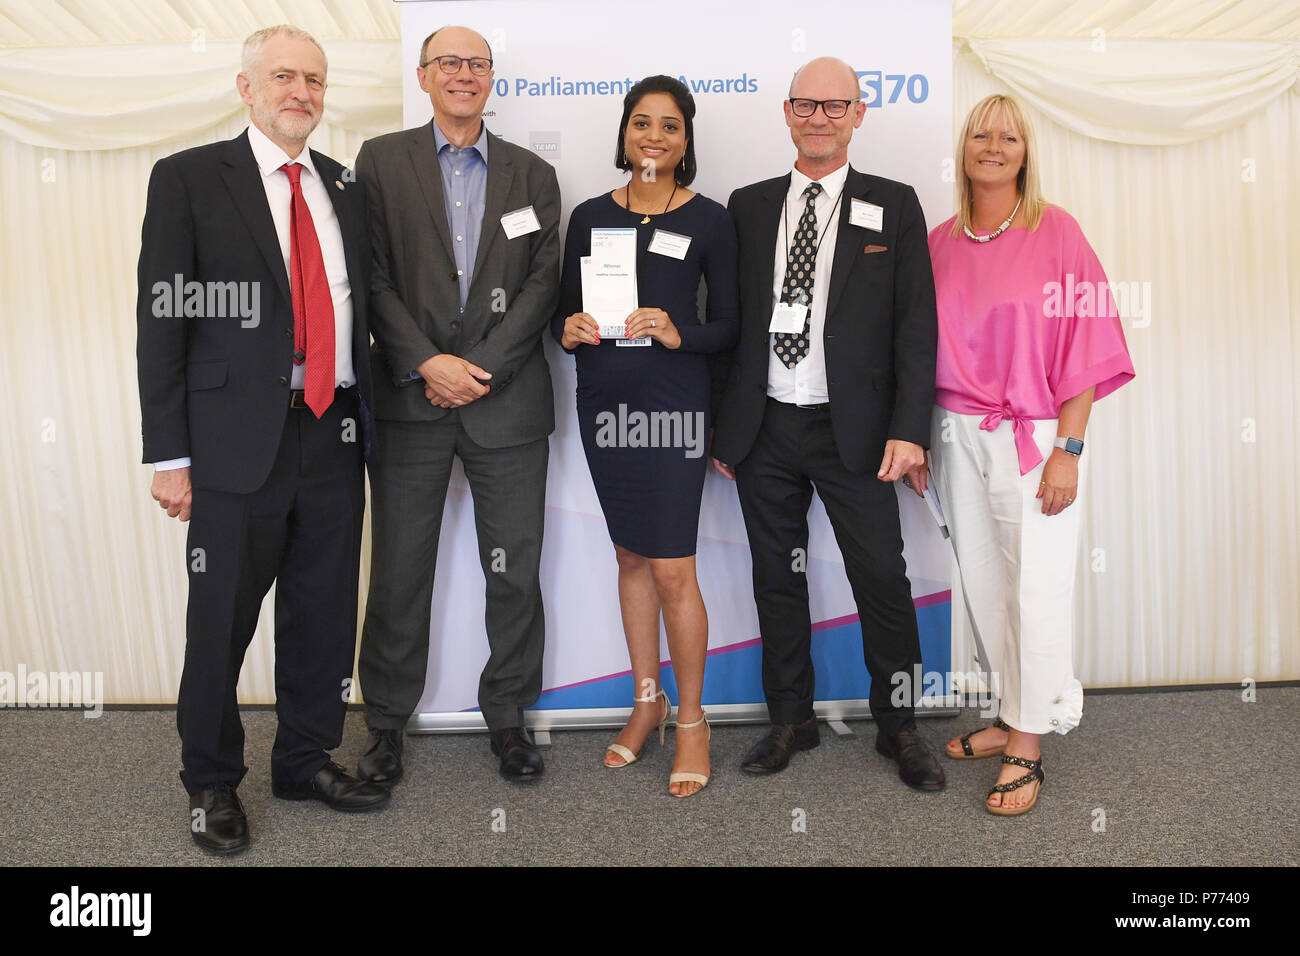 Dr Rammya Mathew (centre) and Dr Mike Clowes (second right) receive their Healthier Com unities Award from Jeremy Corbyn, Stephen Powis (second left) and Kate Smith (right) during the NHS70 parliamentary awards for the 70th anniversary of the NHS at the House of Commons in Westminster, London. - Stock Image